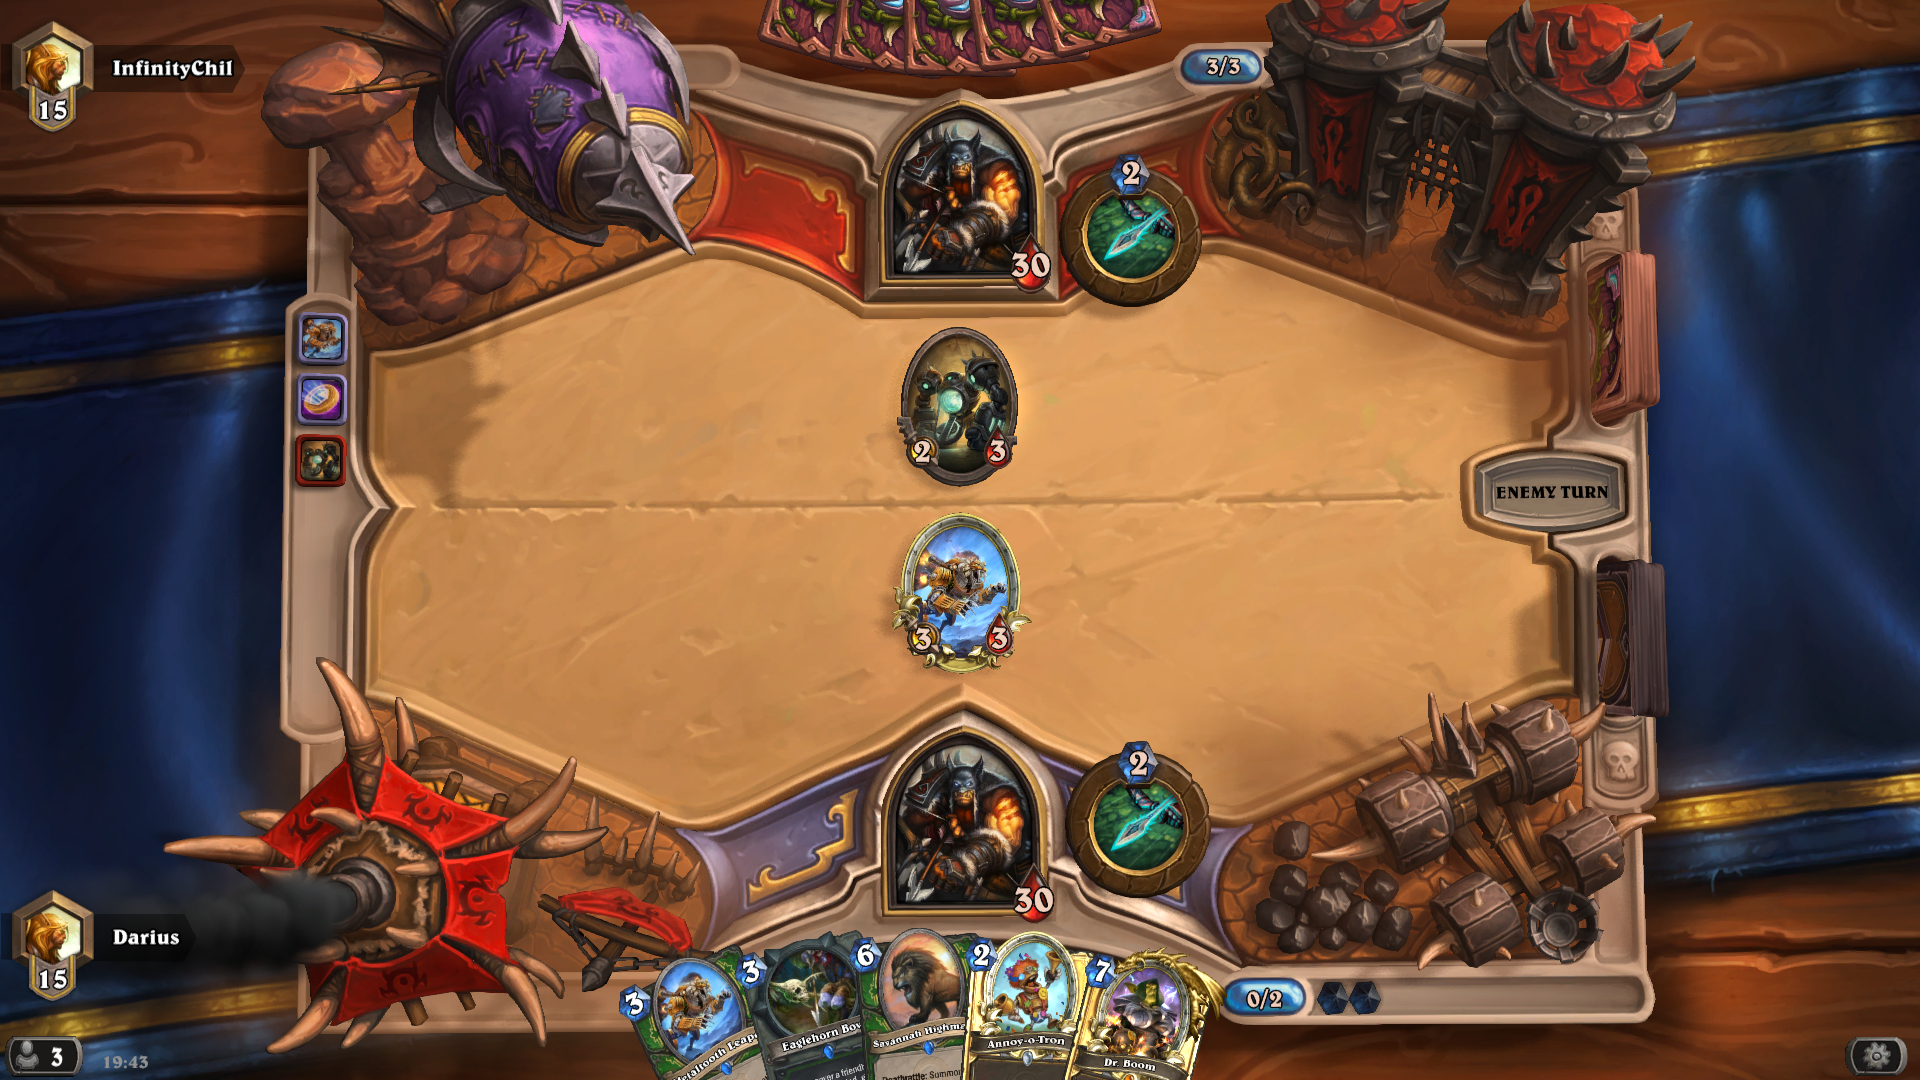 Hearthstone Screenshot 08-04-15 19.43.28.png